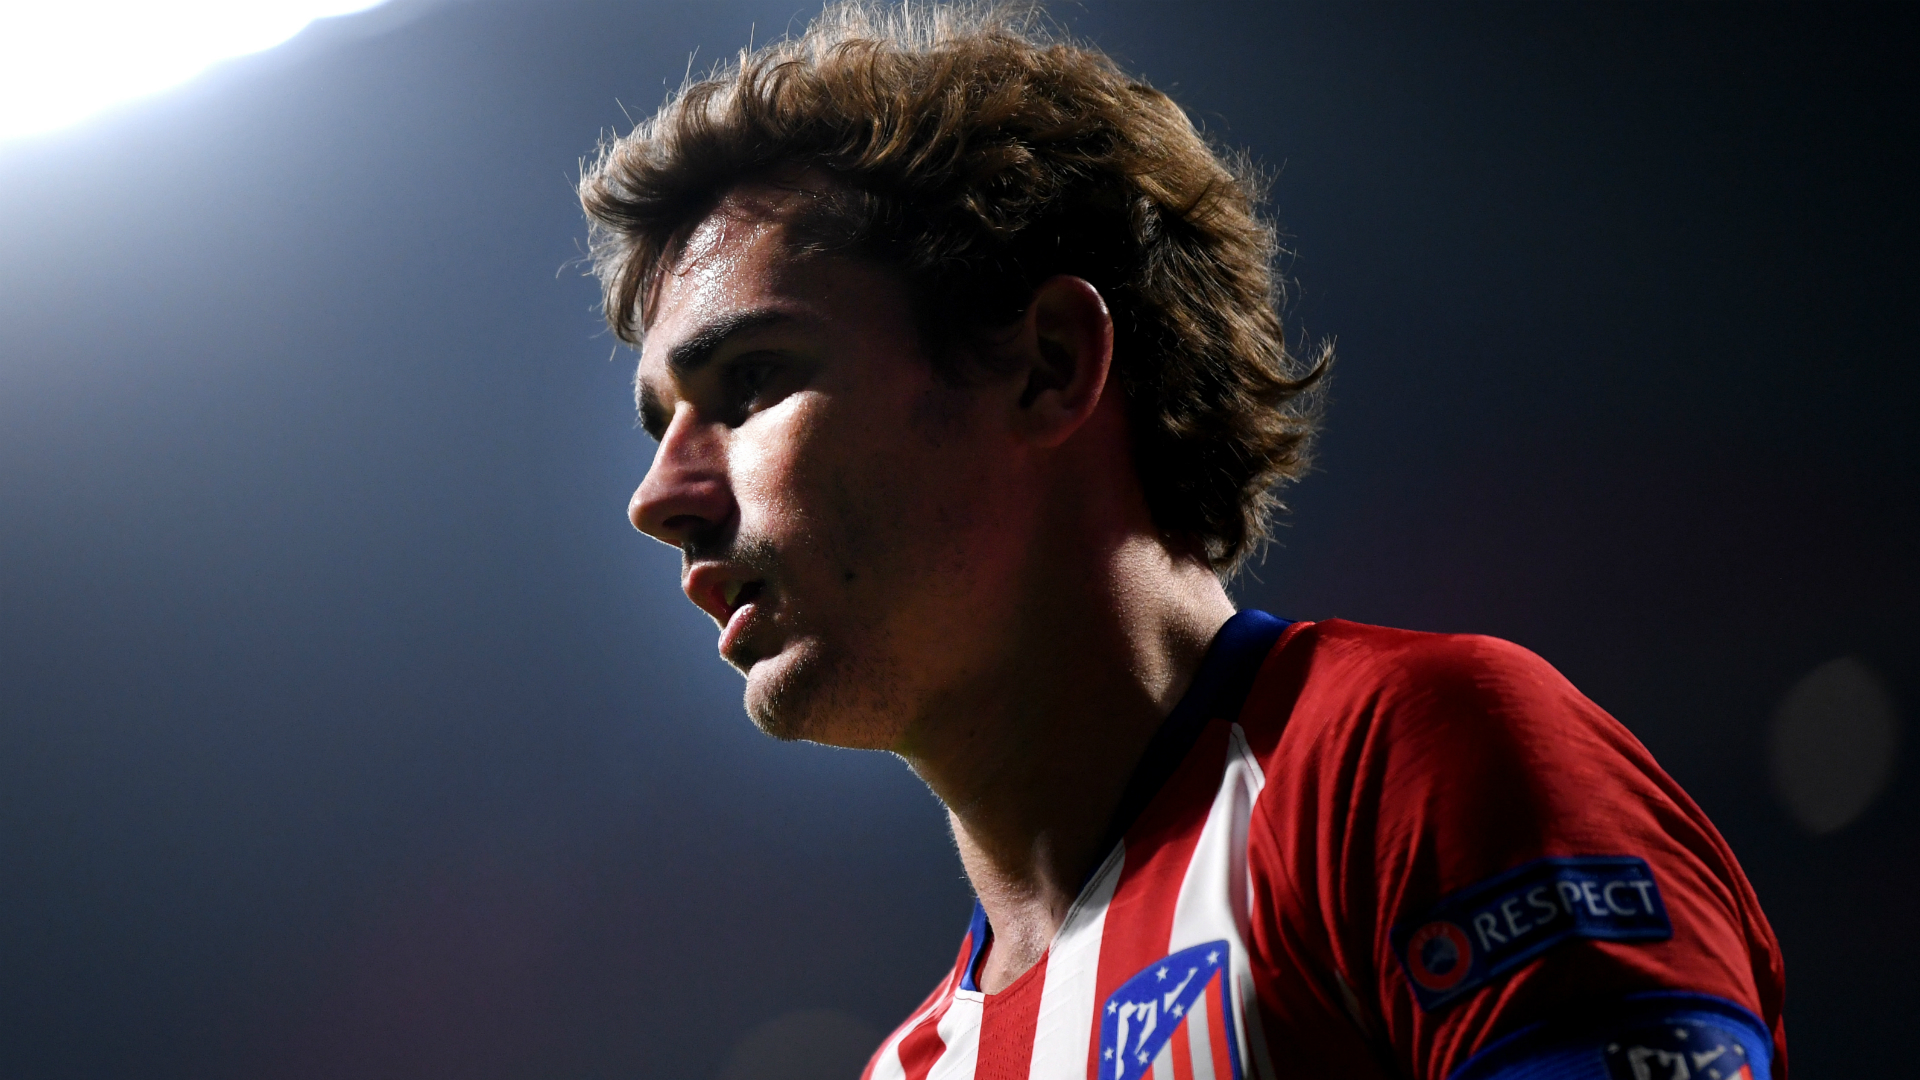 World Cup over Ballon d'Or for disappointed Griezmann